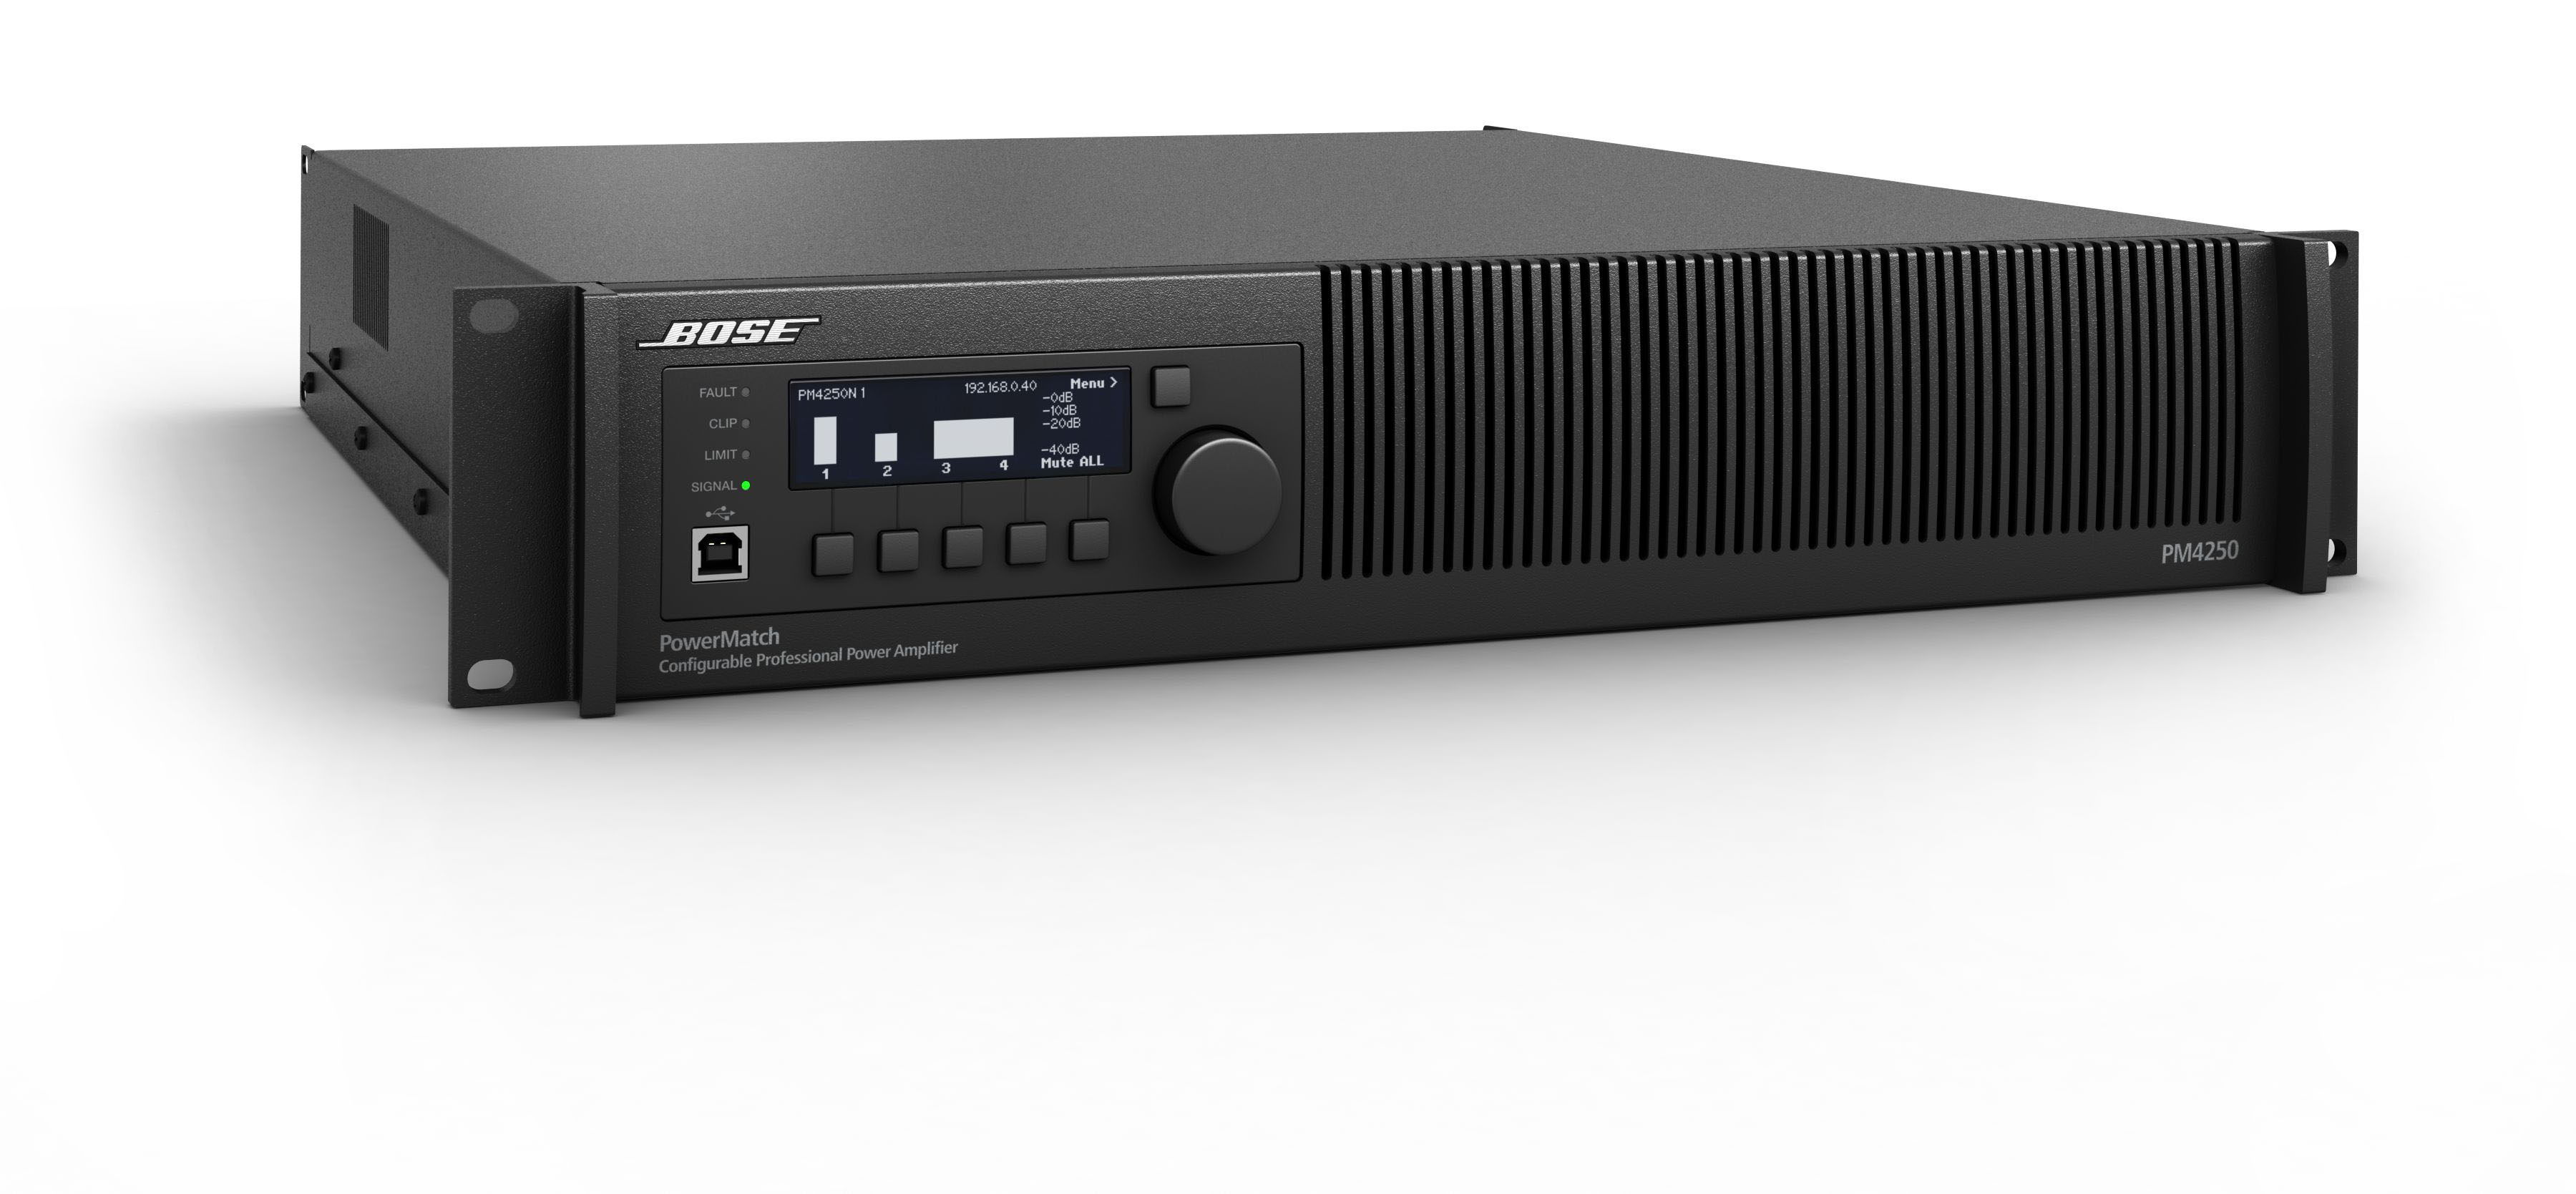 Présentation de l'amplificateur Bose PowerMatch PM4250 ControlSound Division professionnelle